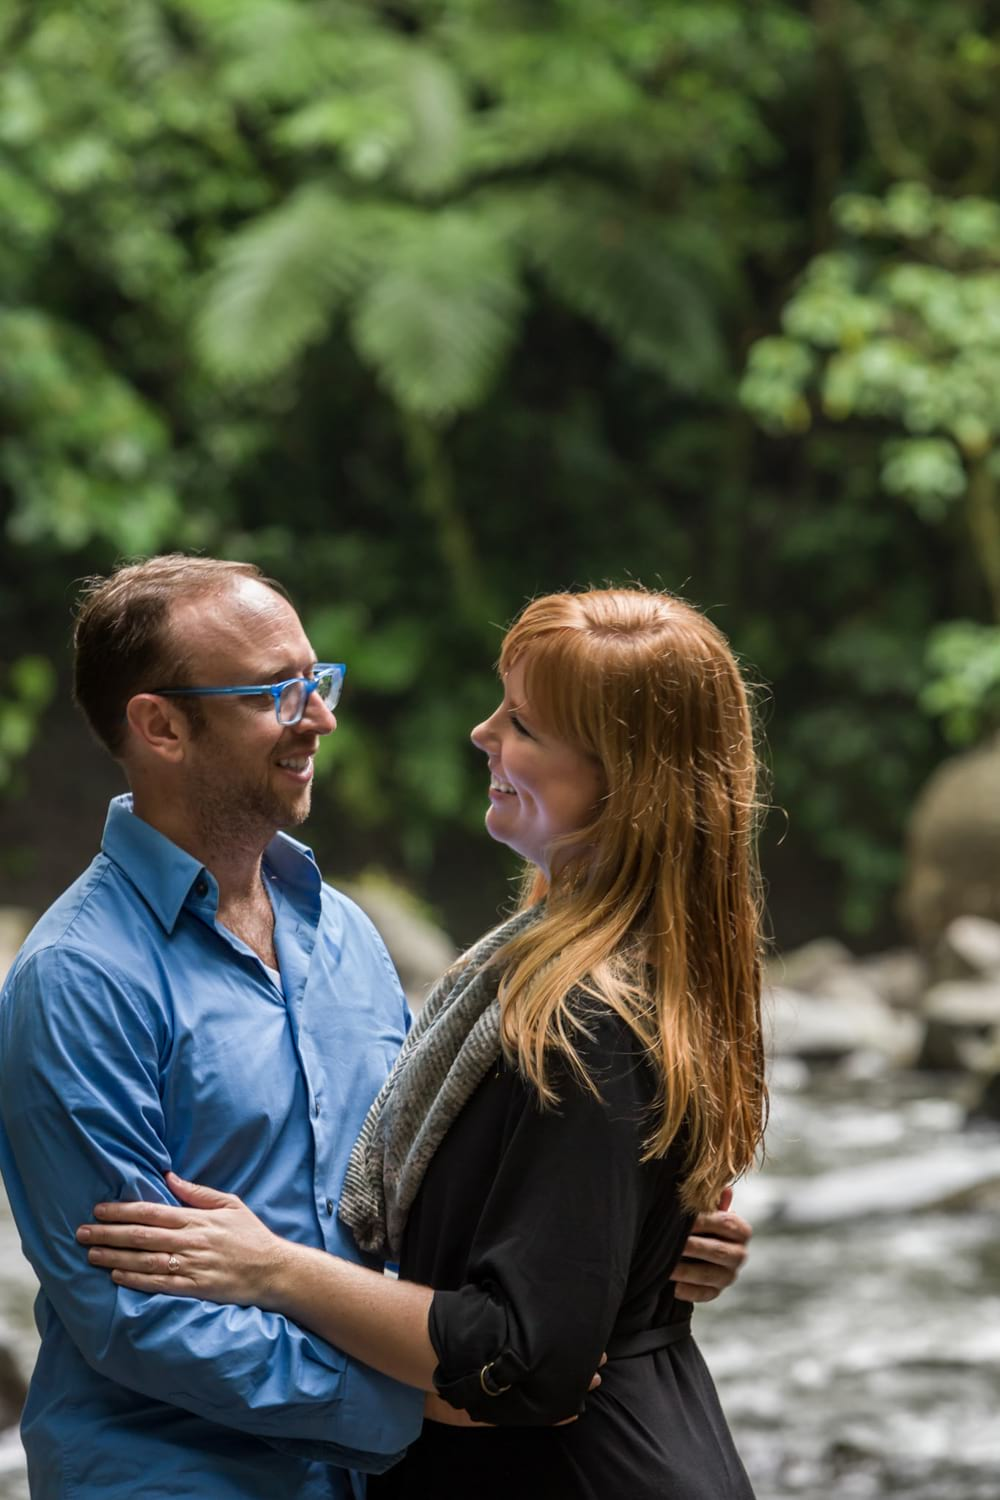 During engagement in Costa Rica, a just engaged couple smiles at